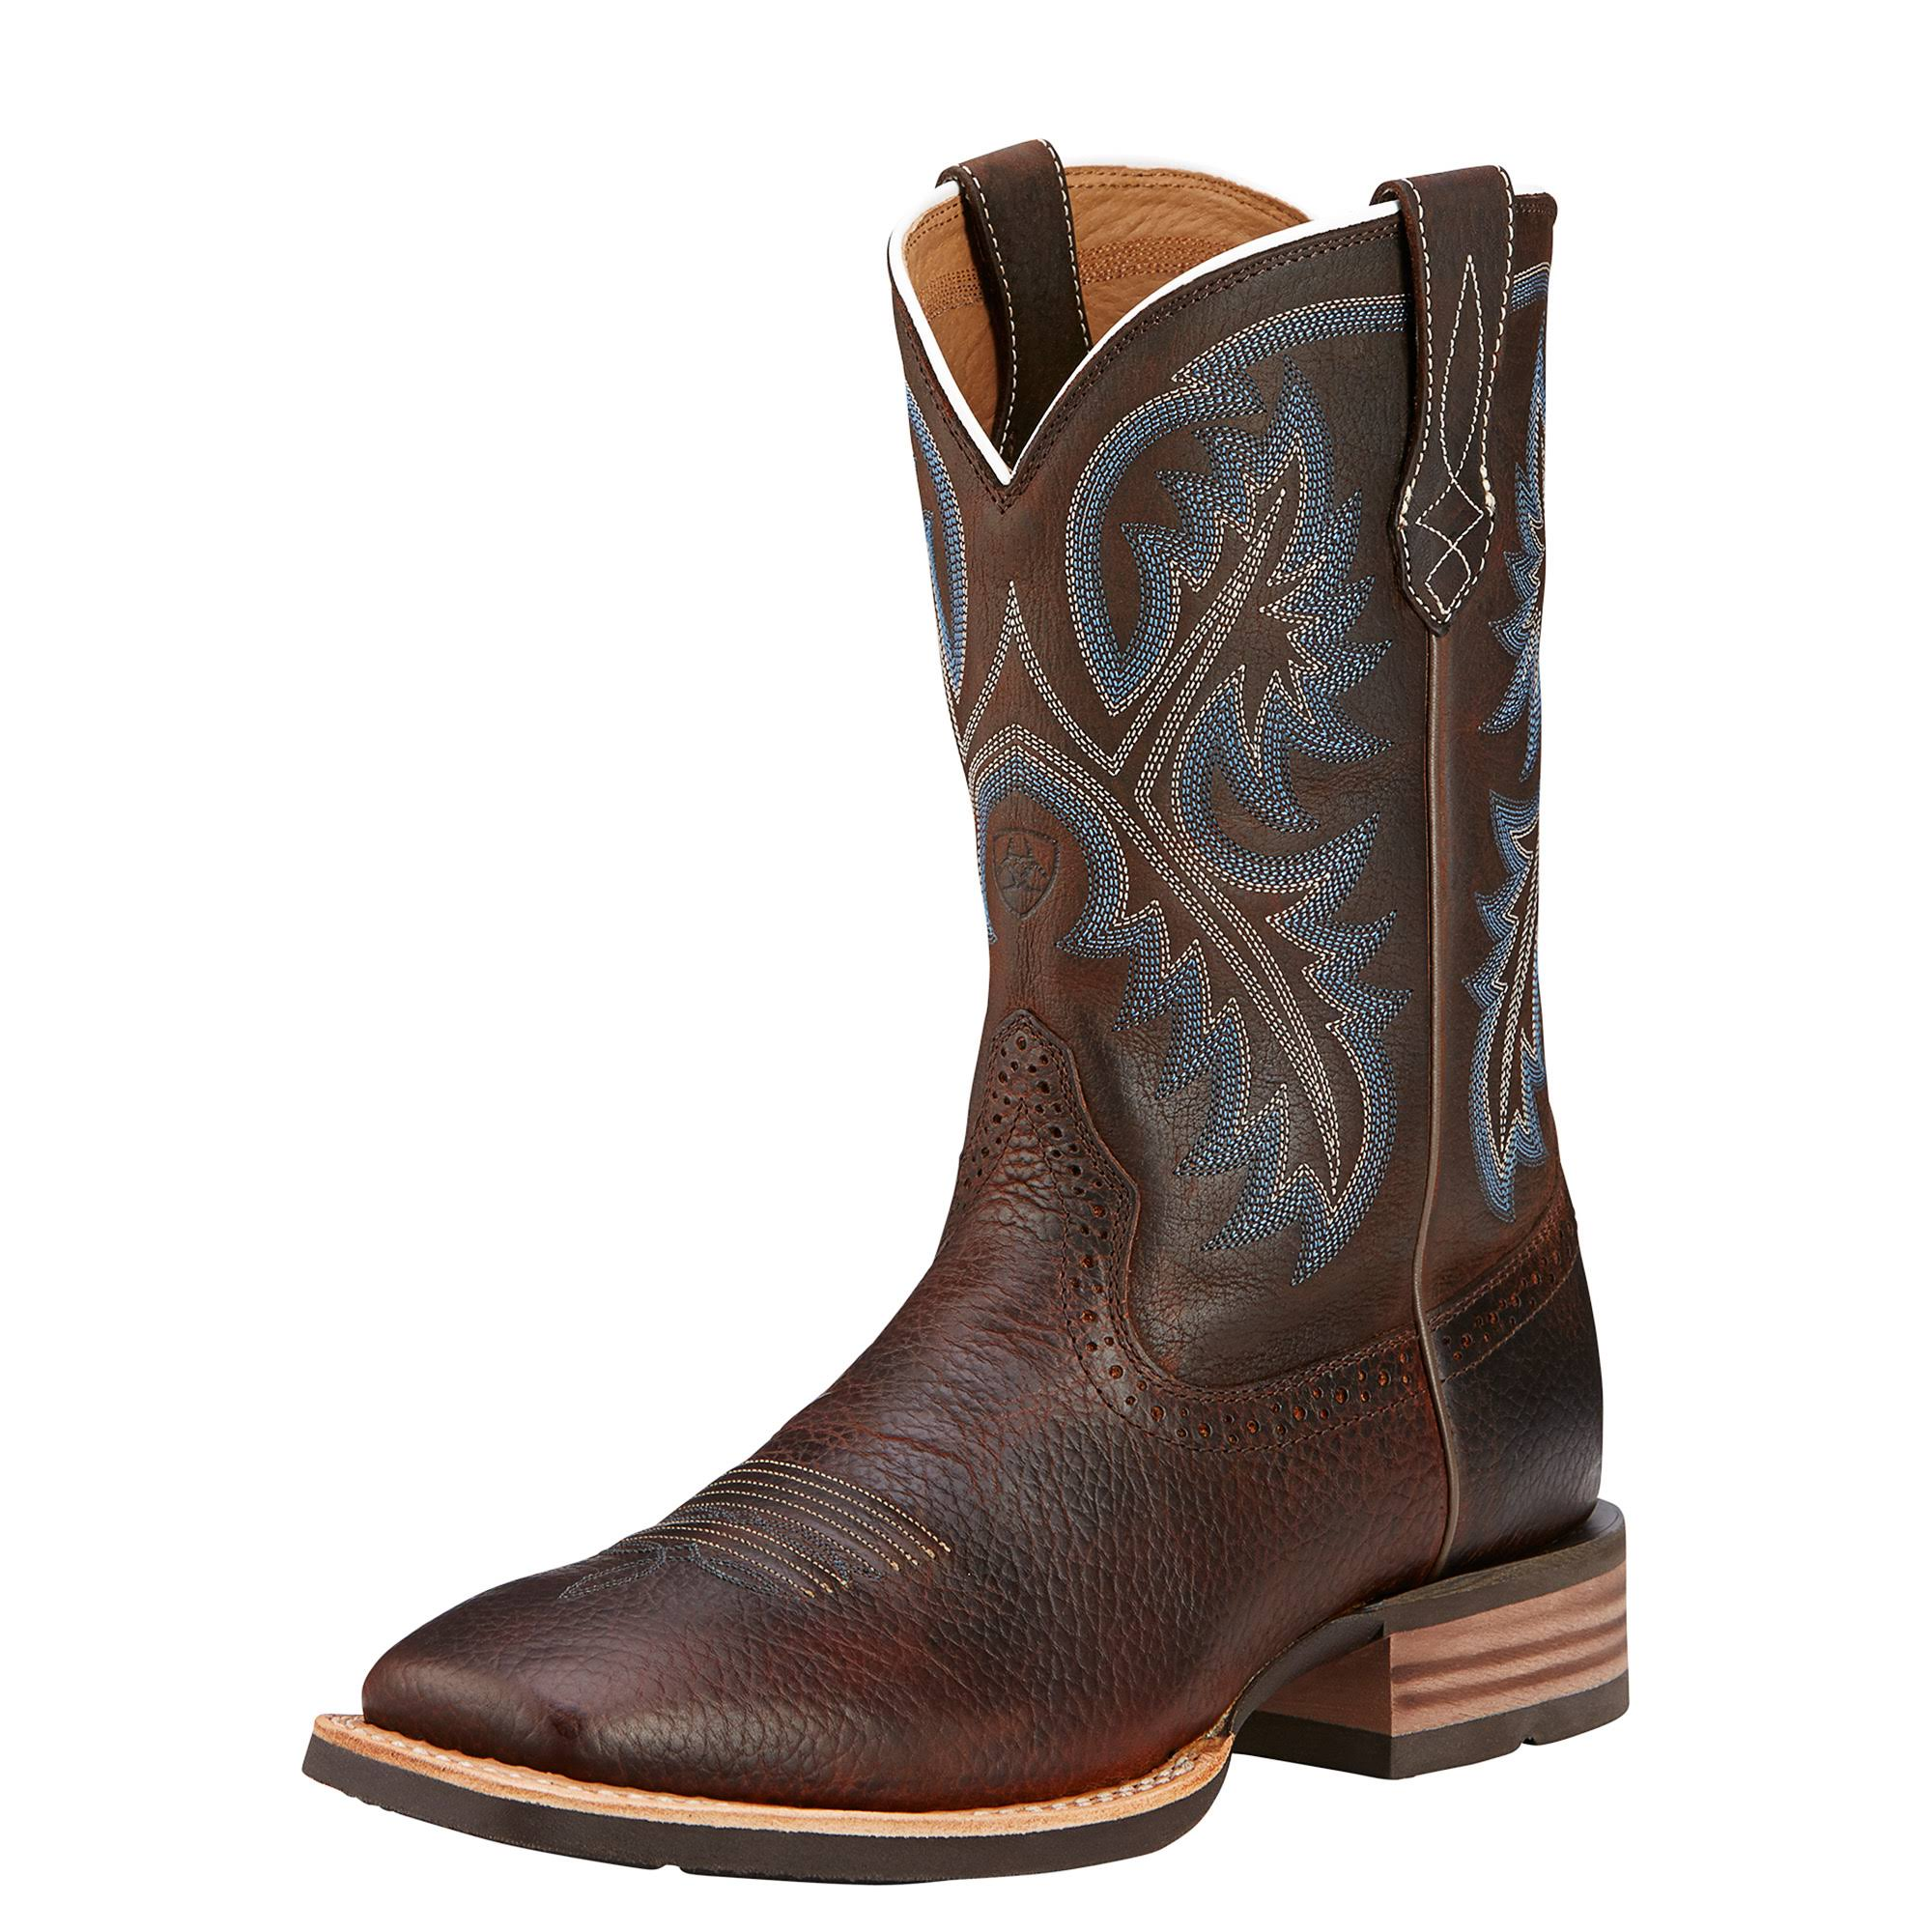 Ariat Men's Quickdraw Western Boot - Brown Oiled Rowdy, 12 US